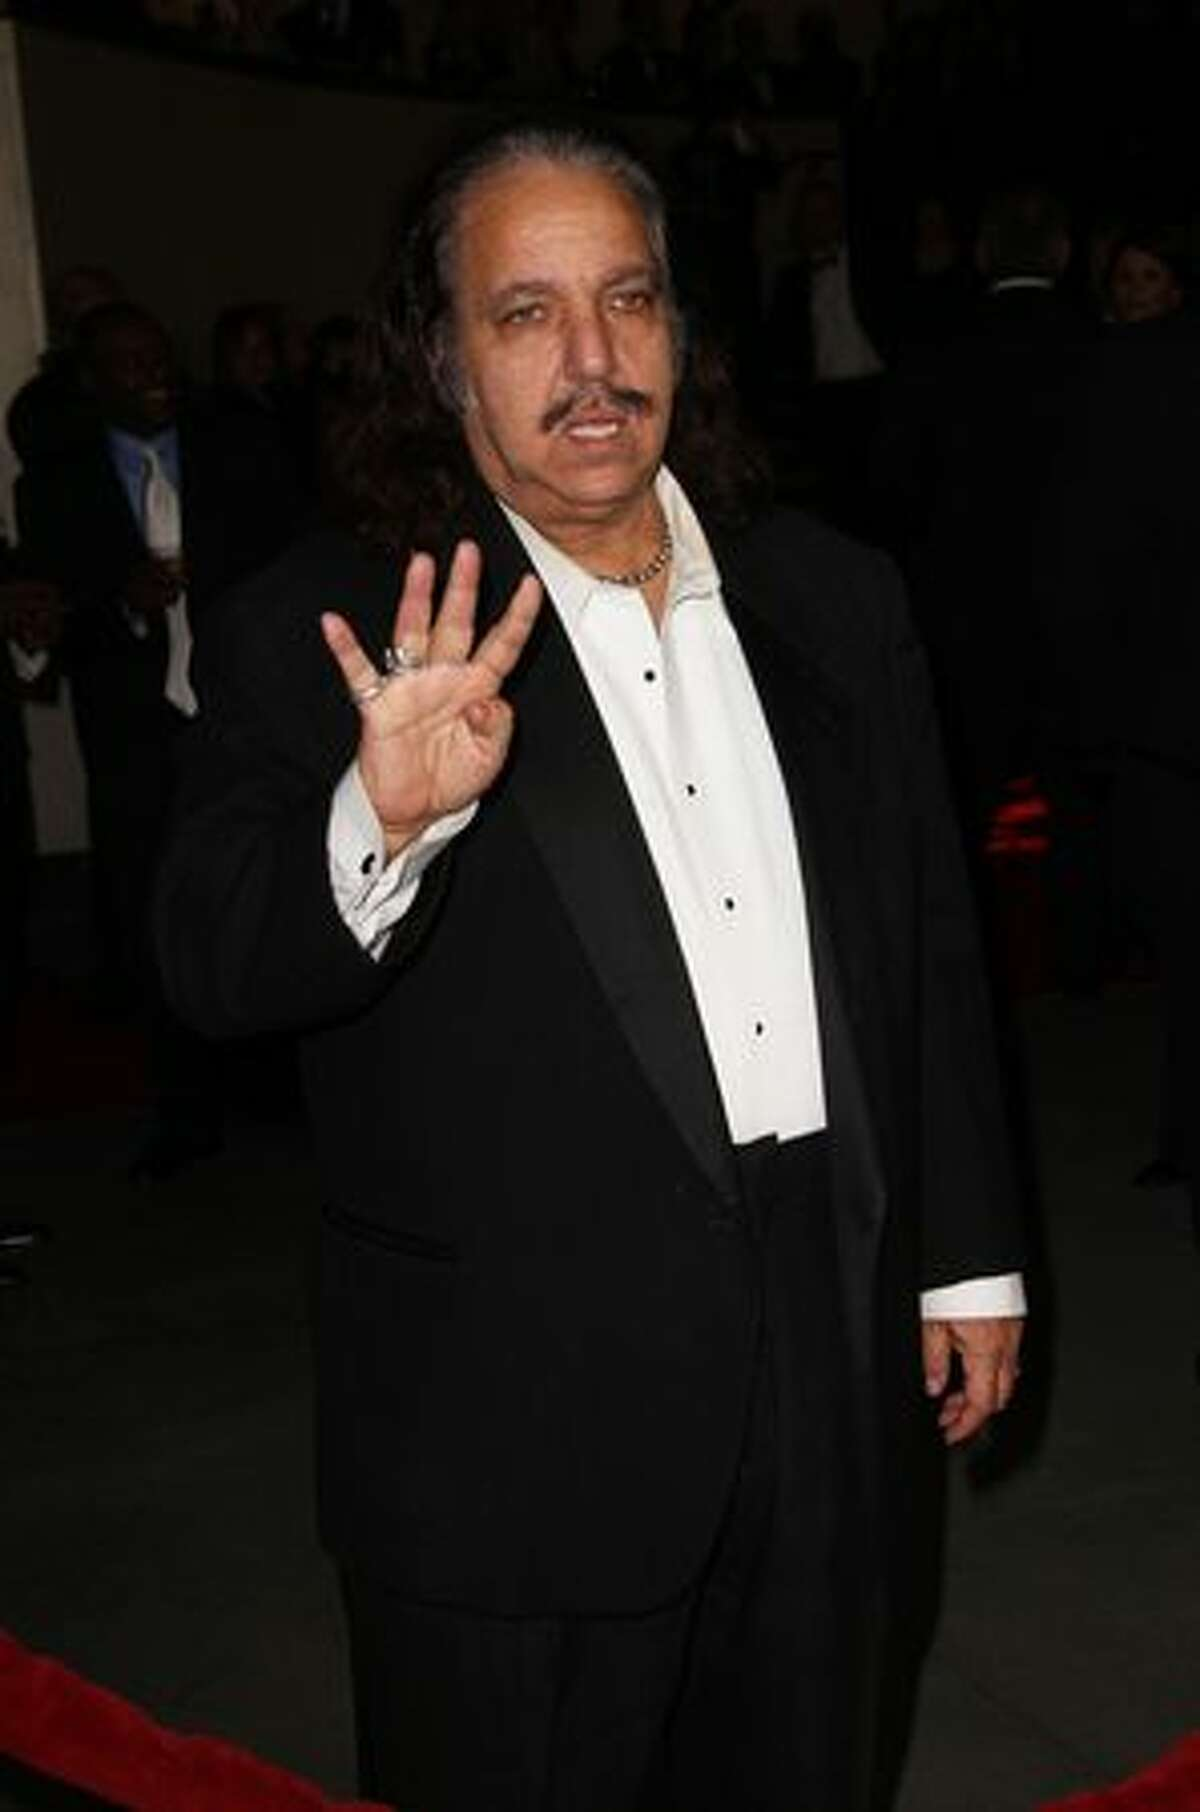 Actor/director Ron Jeremy arrives.